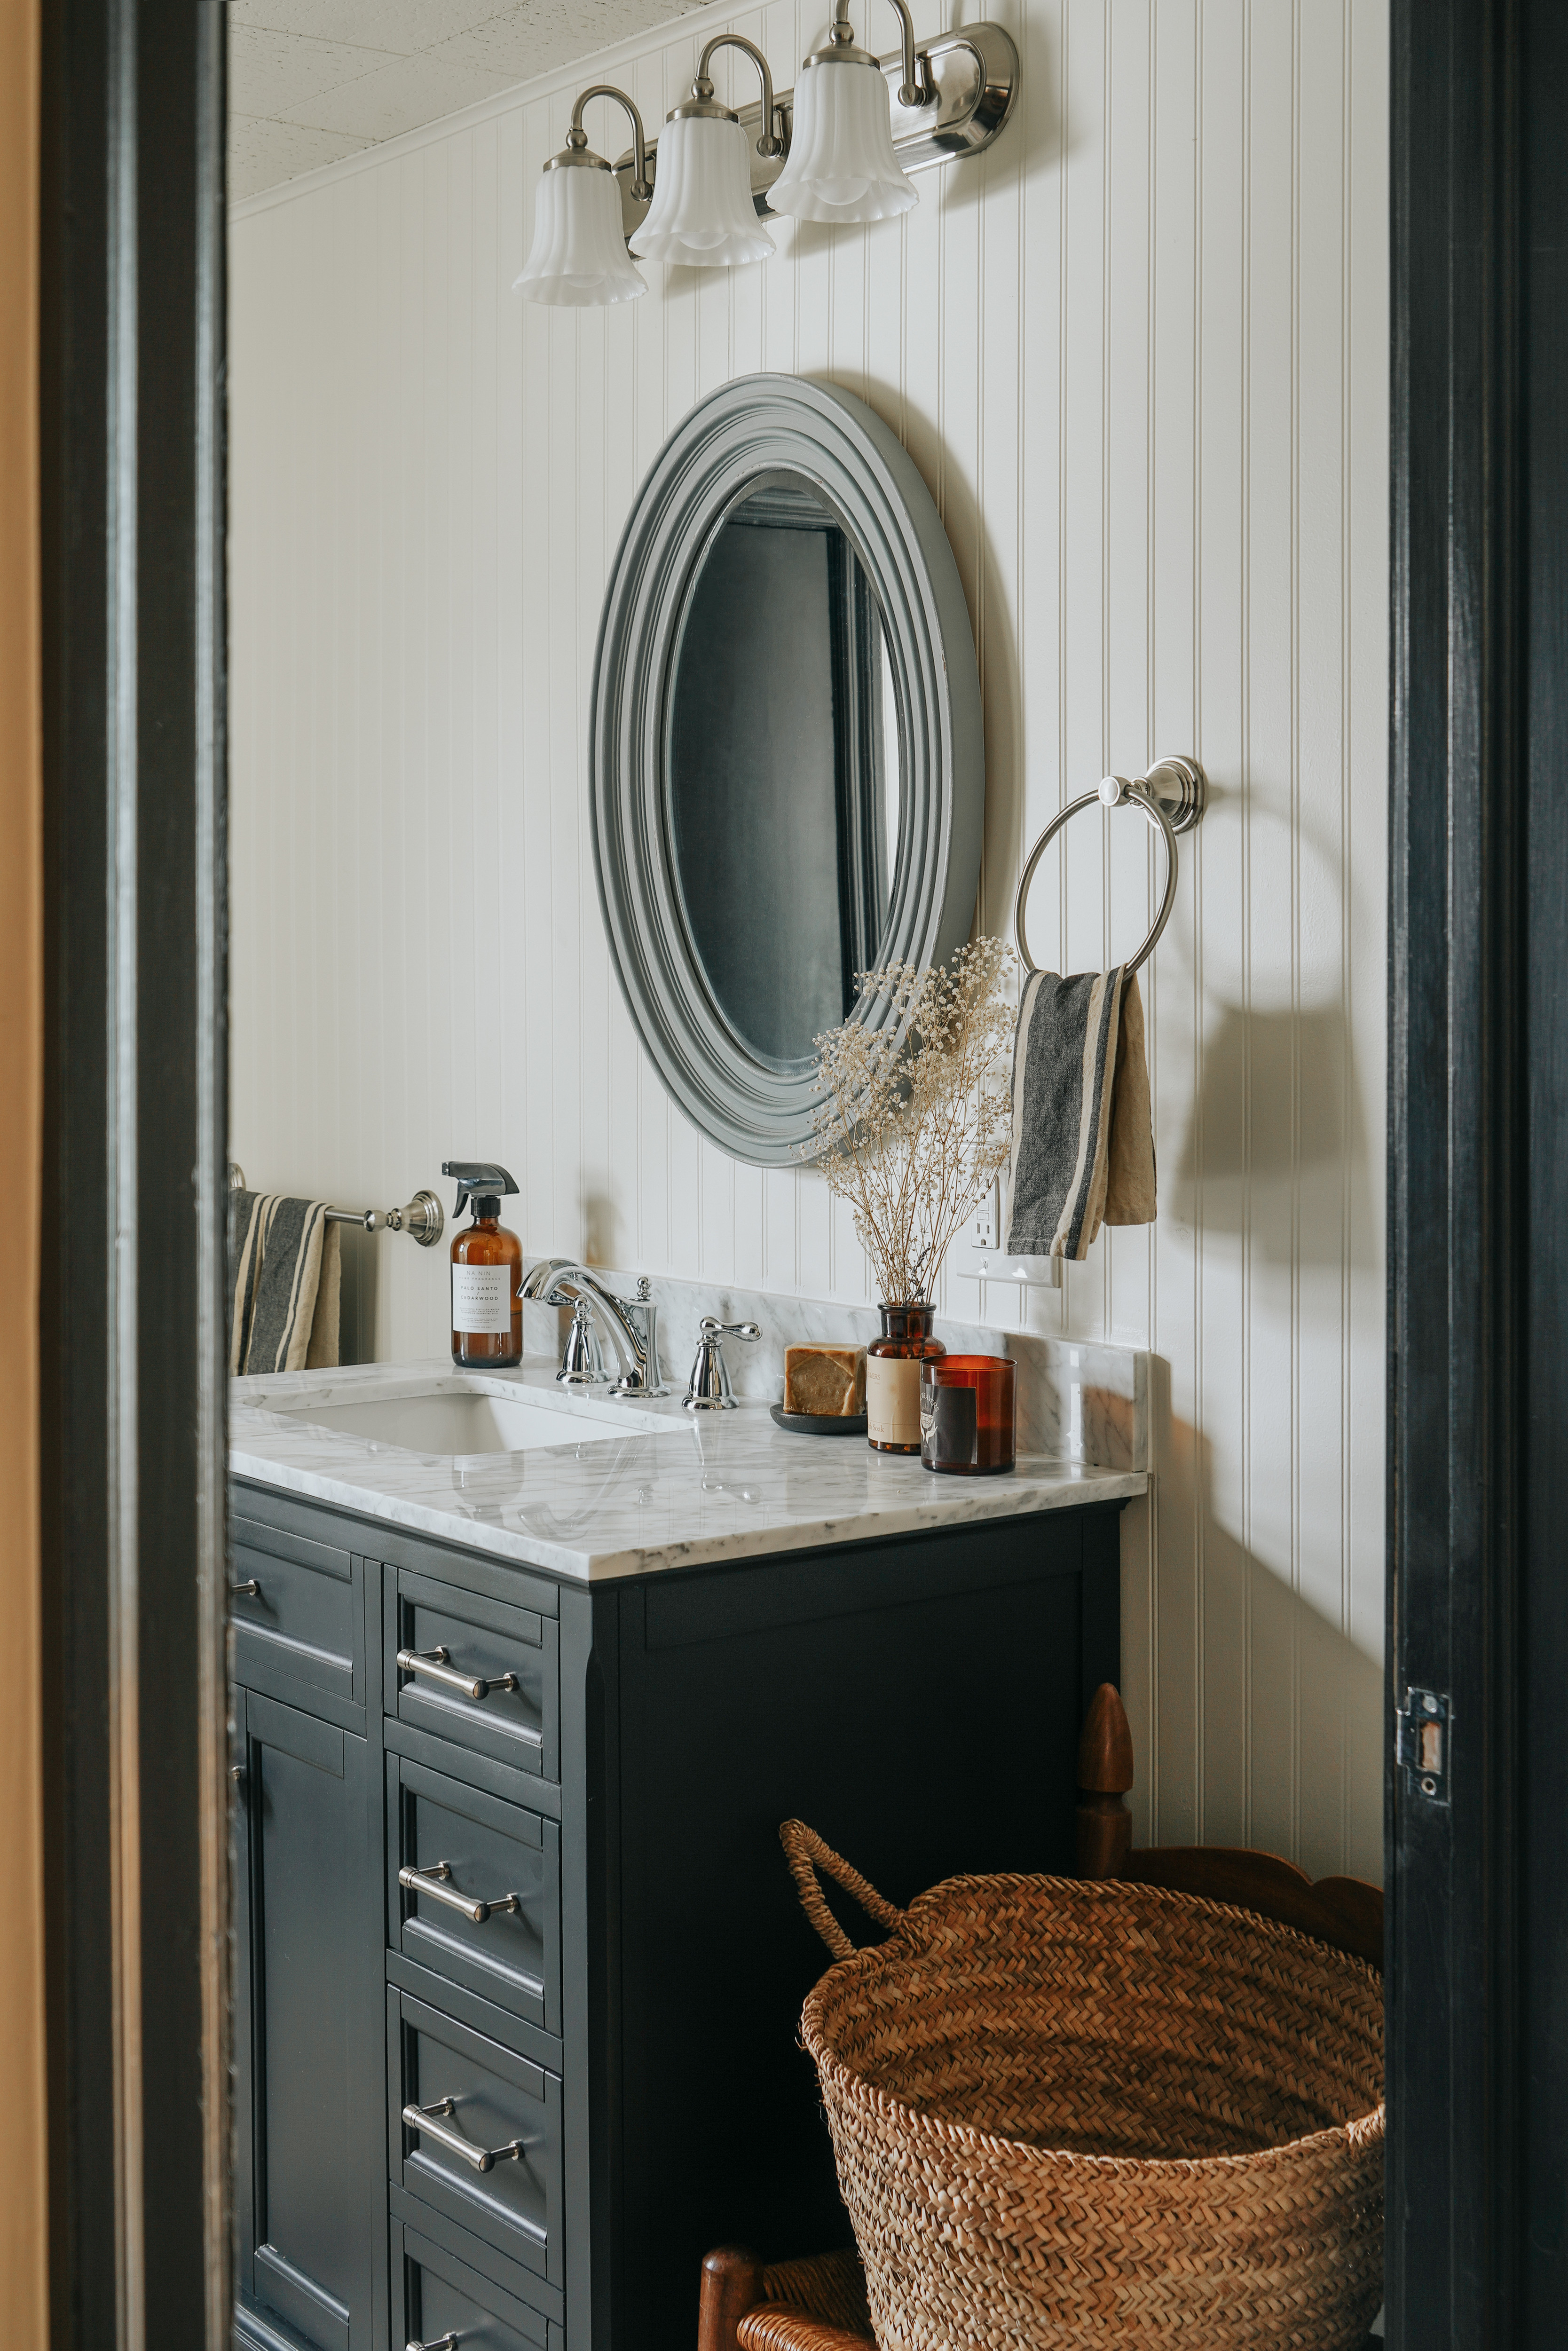 The home's historic charm even makes its way into the bathroom embracing tradition with a modern touch. Vintage basket; Vintage Mirror; Na Ni Palo Santo Room Spray; West Elm Hand Towel.